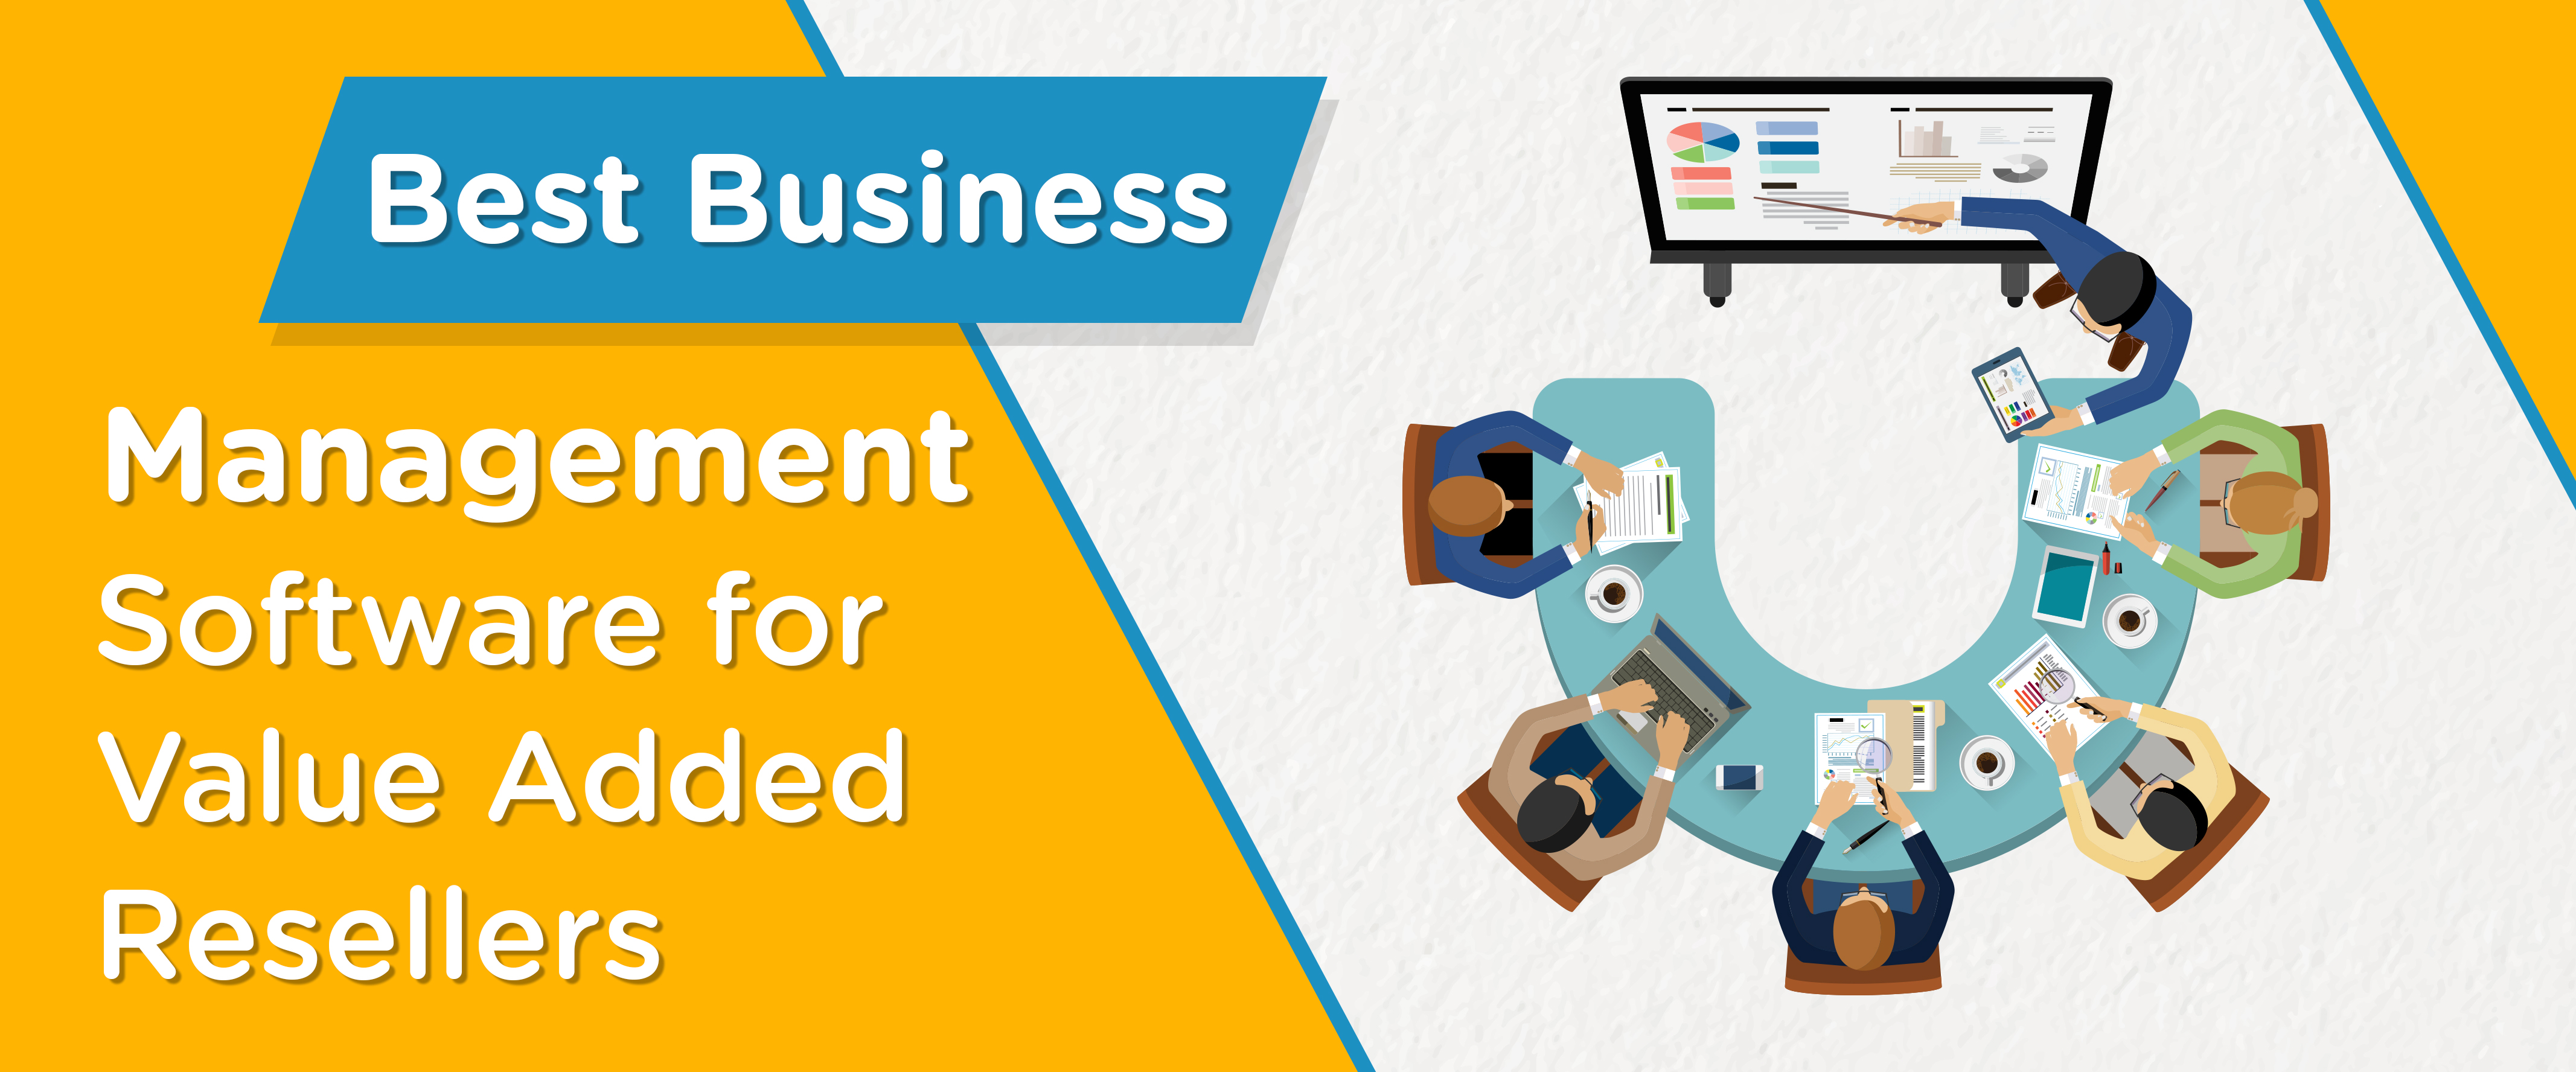 15 Reasons Why VARStreet is the Best Business Management Software for Value Added Resellers (VARs)